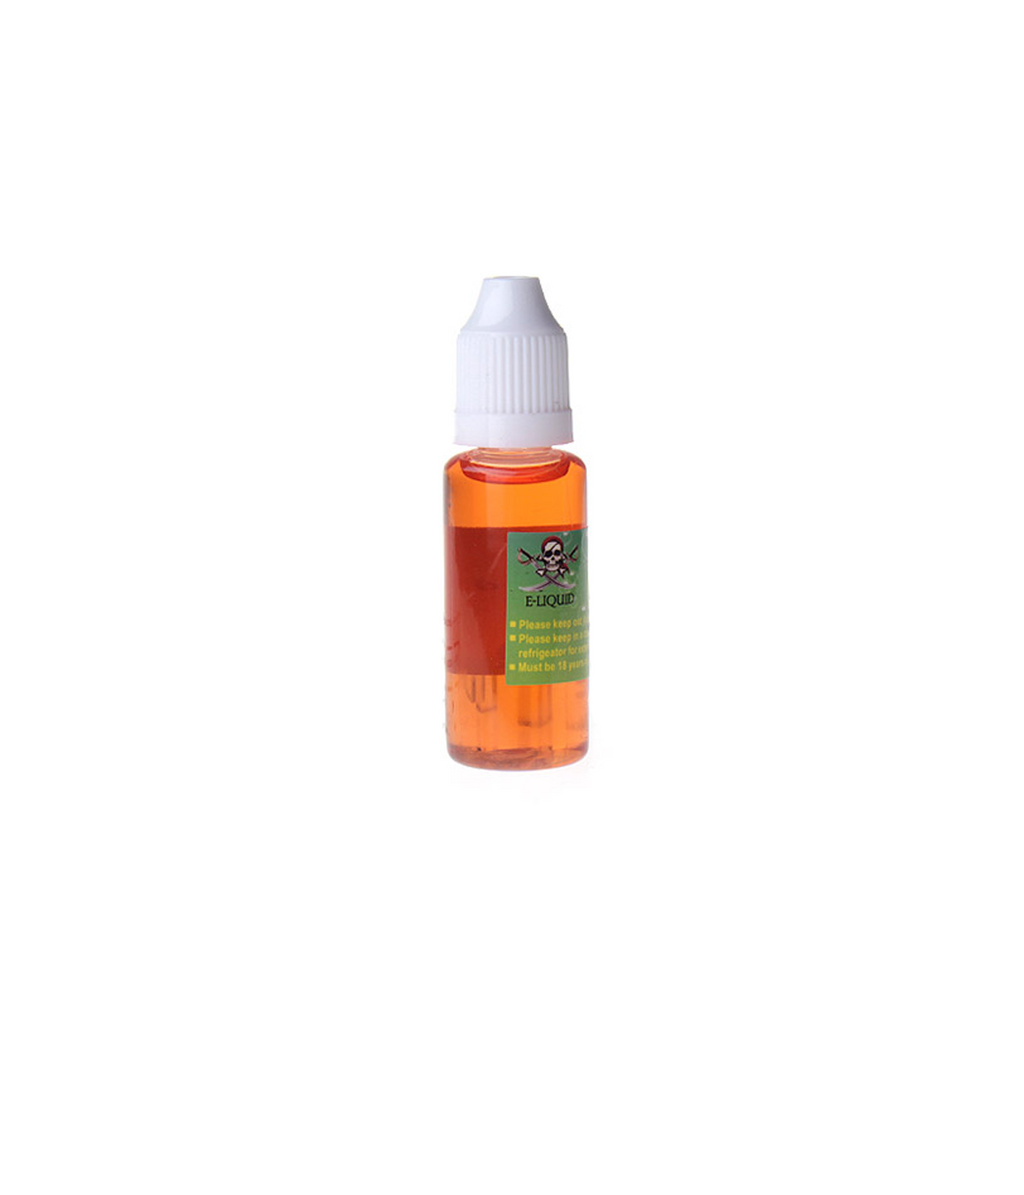 E-liquid US Tobacco Vape Juice 20ml-Purplevibe